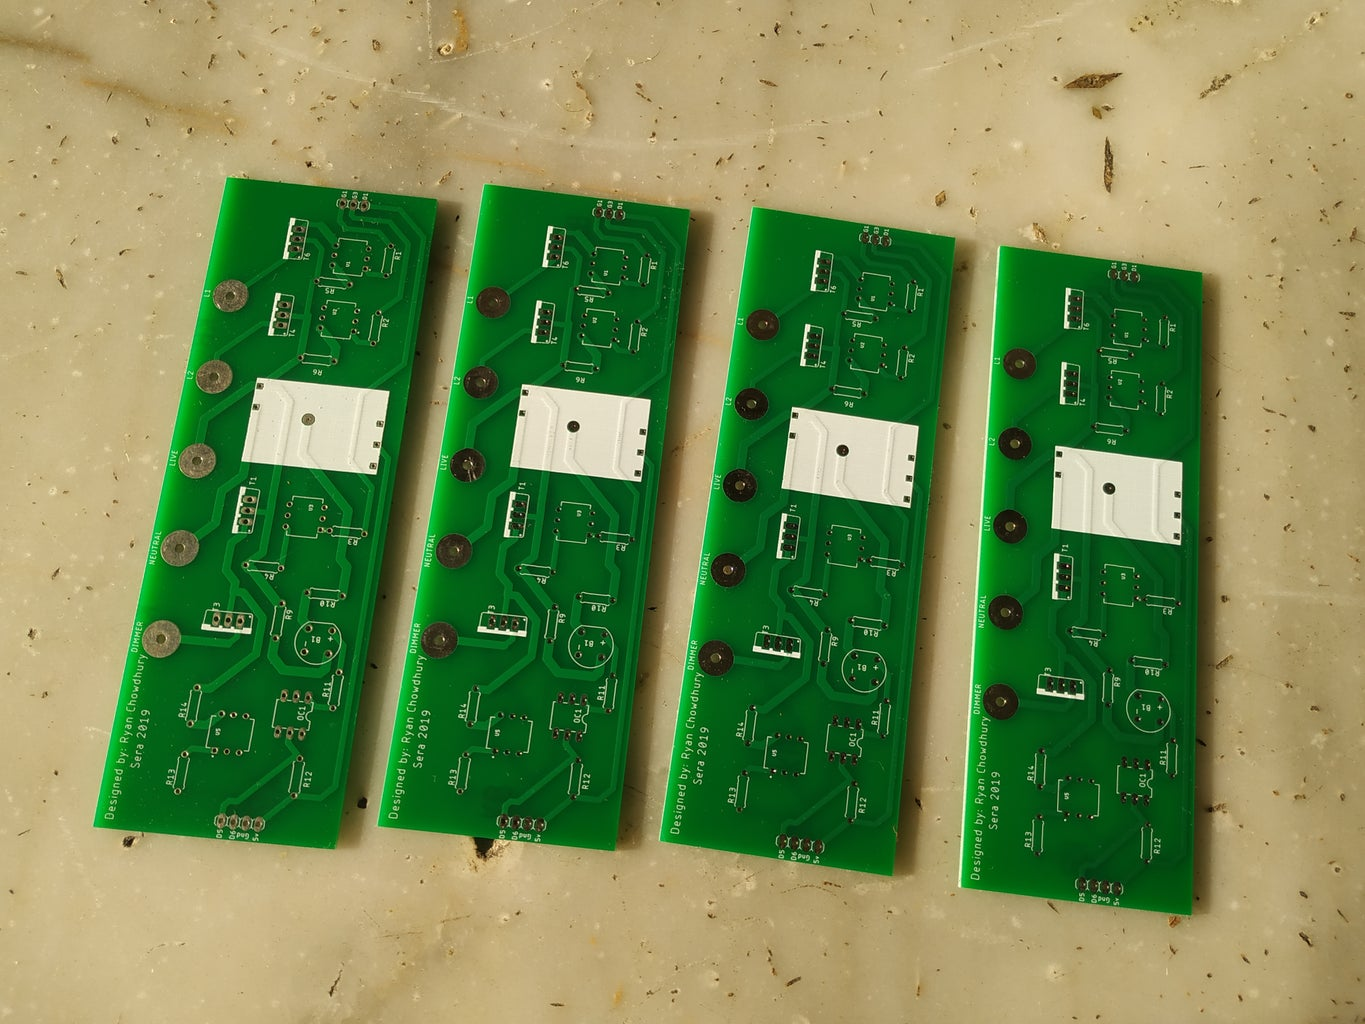 Getting PCB and Soldering of Components